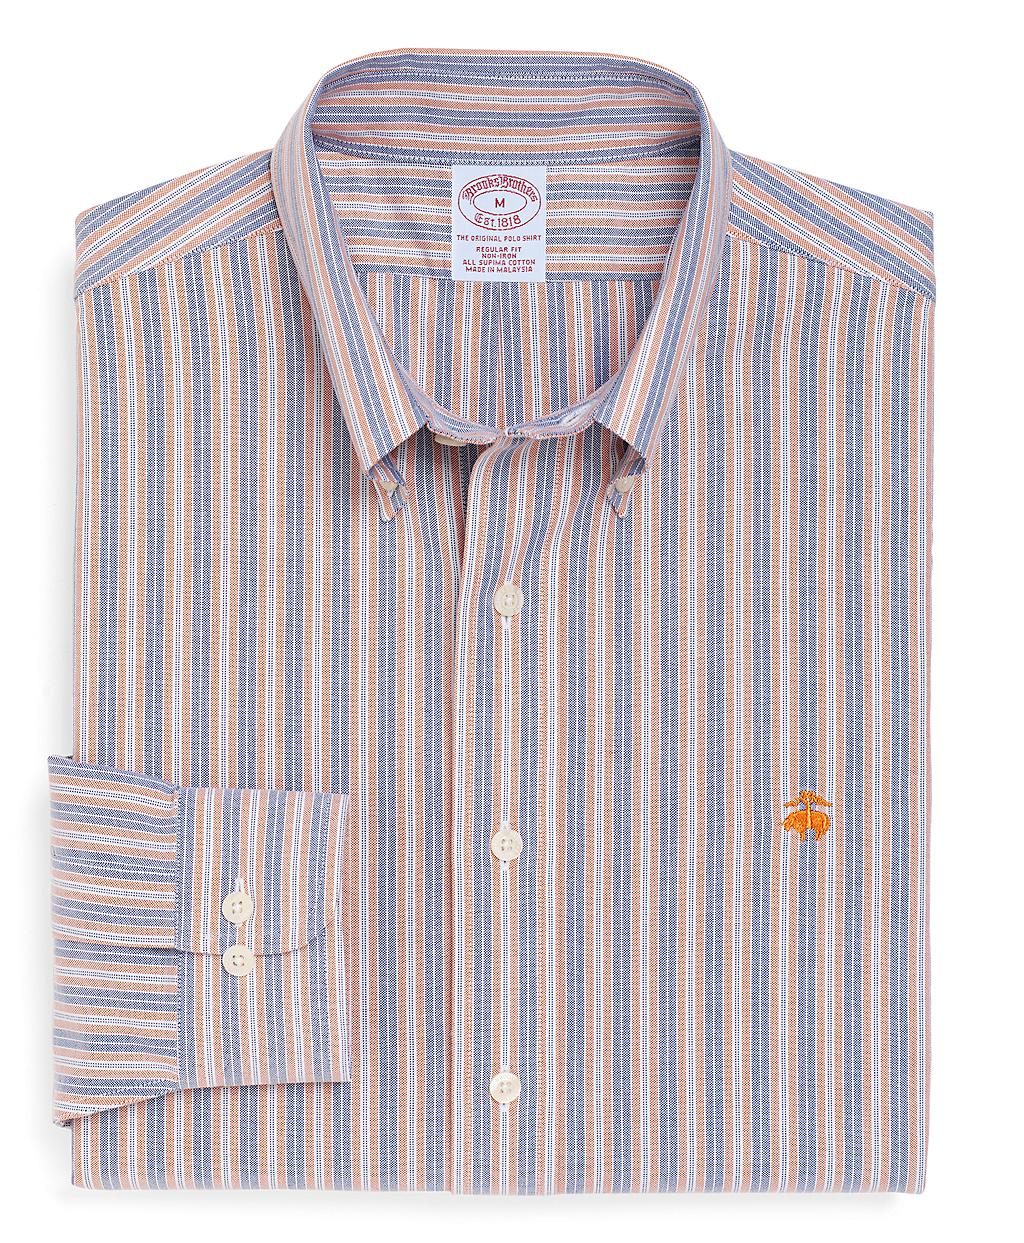 Brooks brothers non iron regular fit double stripe oxford for Brooks brothers non iron shirt review